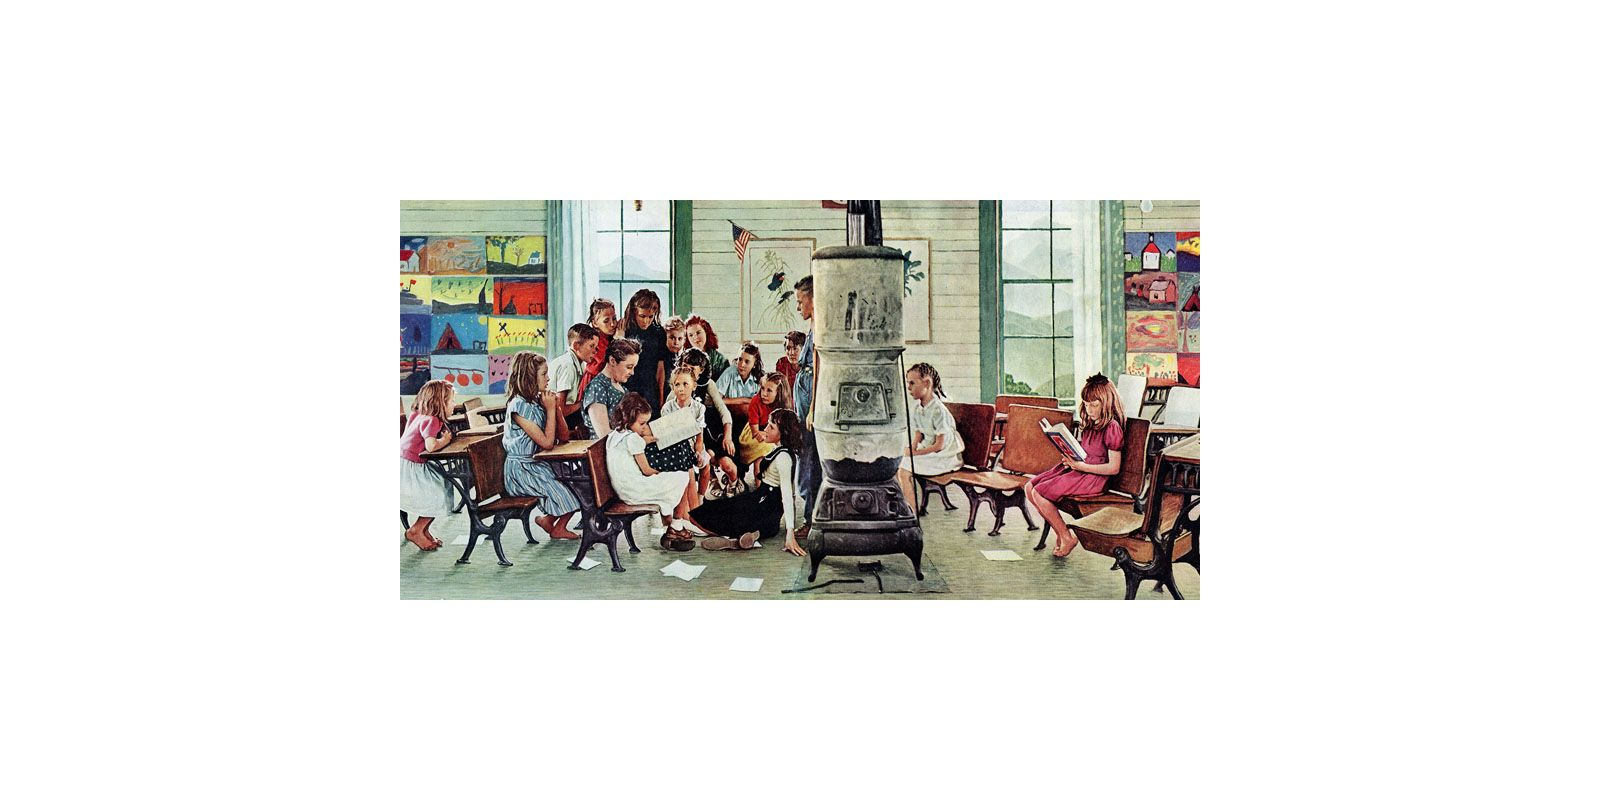 norman rockwell s world an american dream Norman rockwell's worldan american dream - currently unavailable presents the world of american illustrator norman rockwell (1894-1978) through reenactment, stills, paintings, and old film footage.